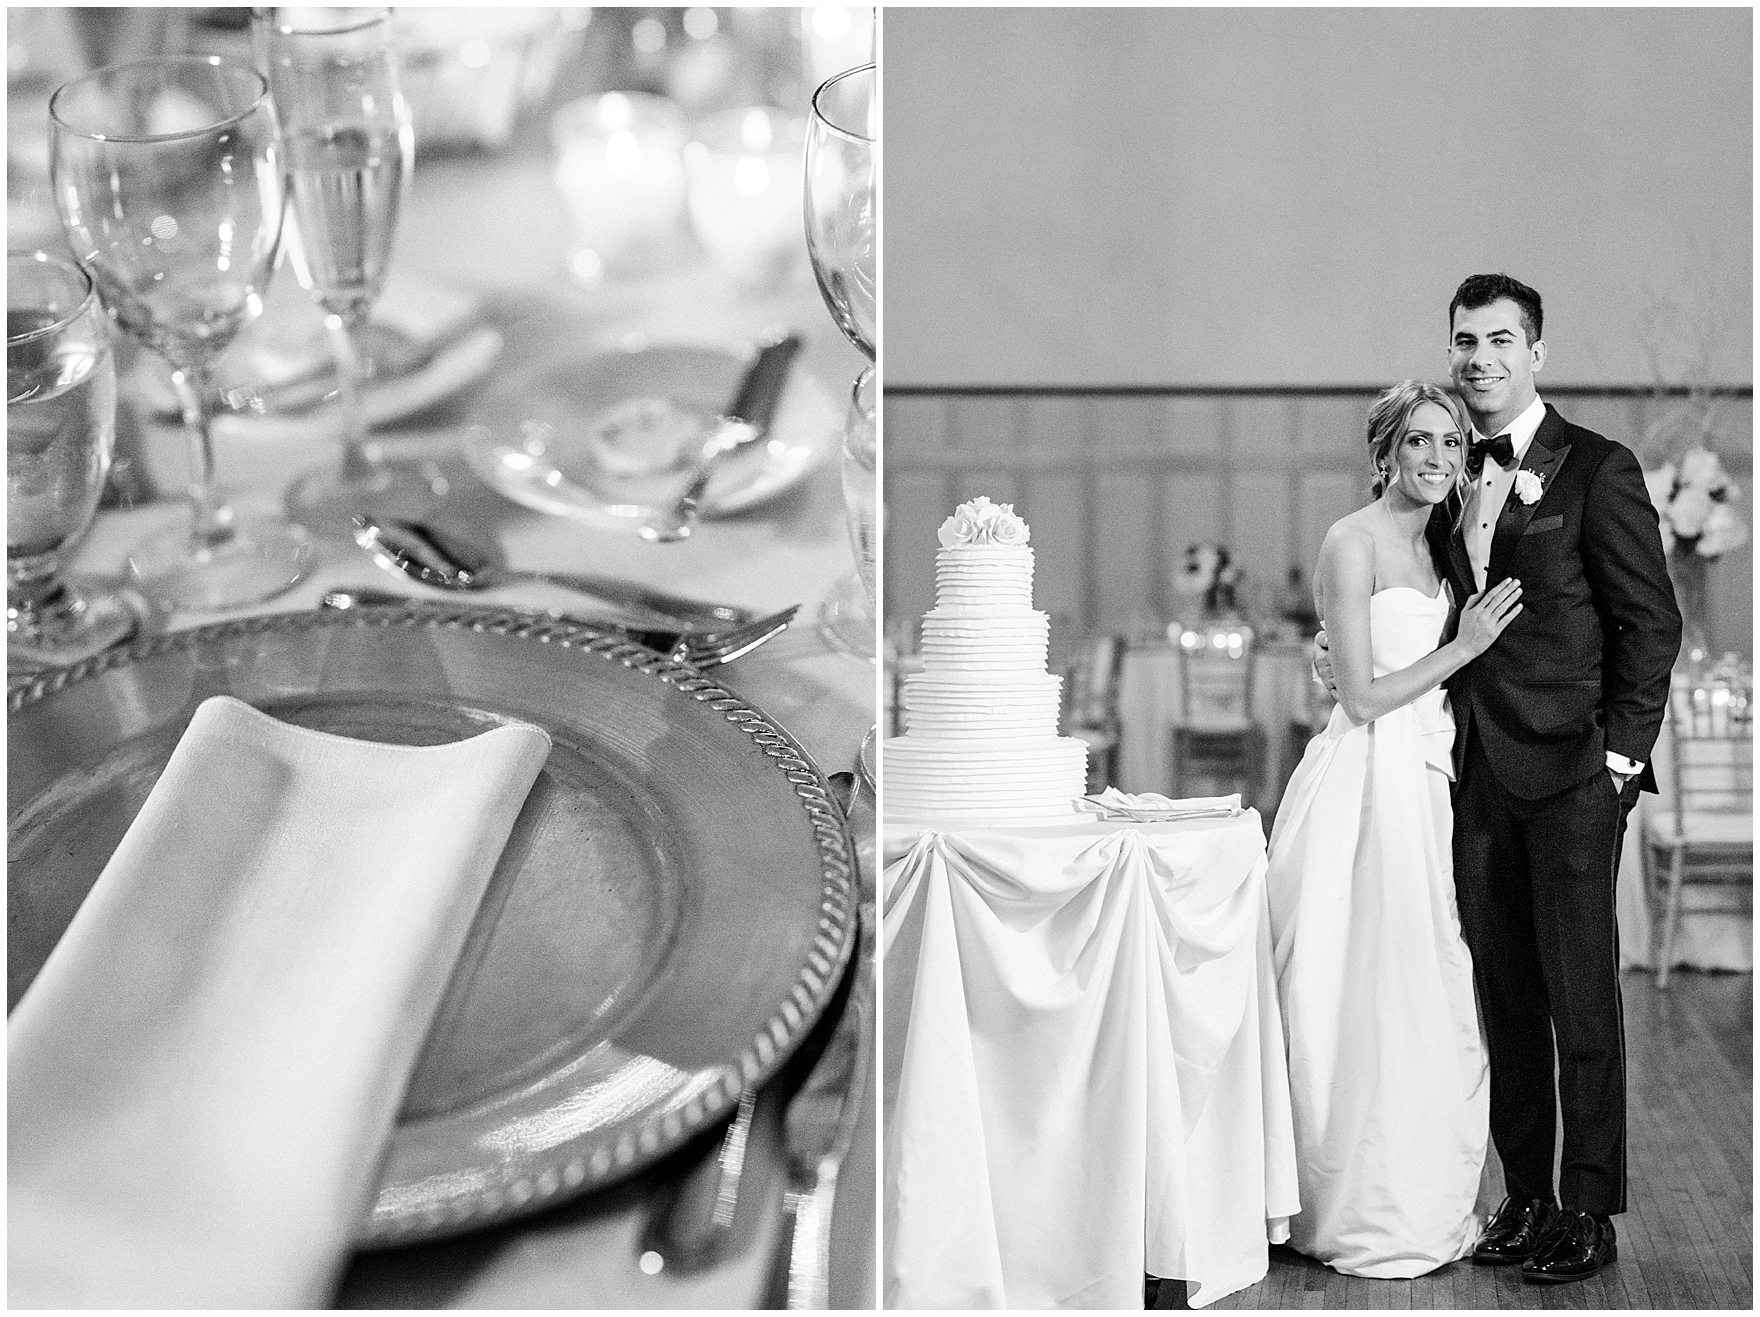 The bride and groom pose near their cake during a St. Clement Germania Place Chicago wedding.